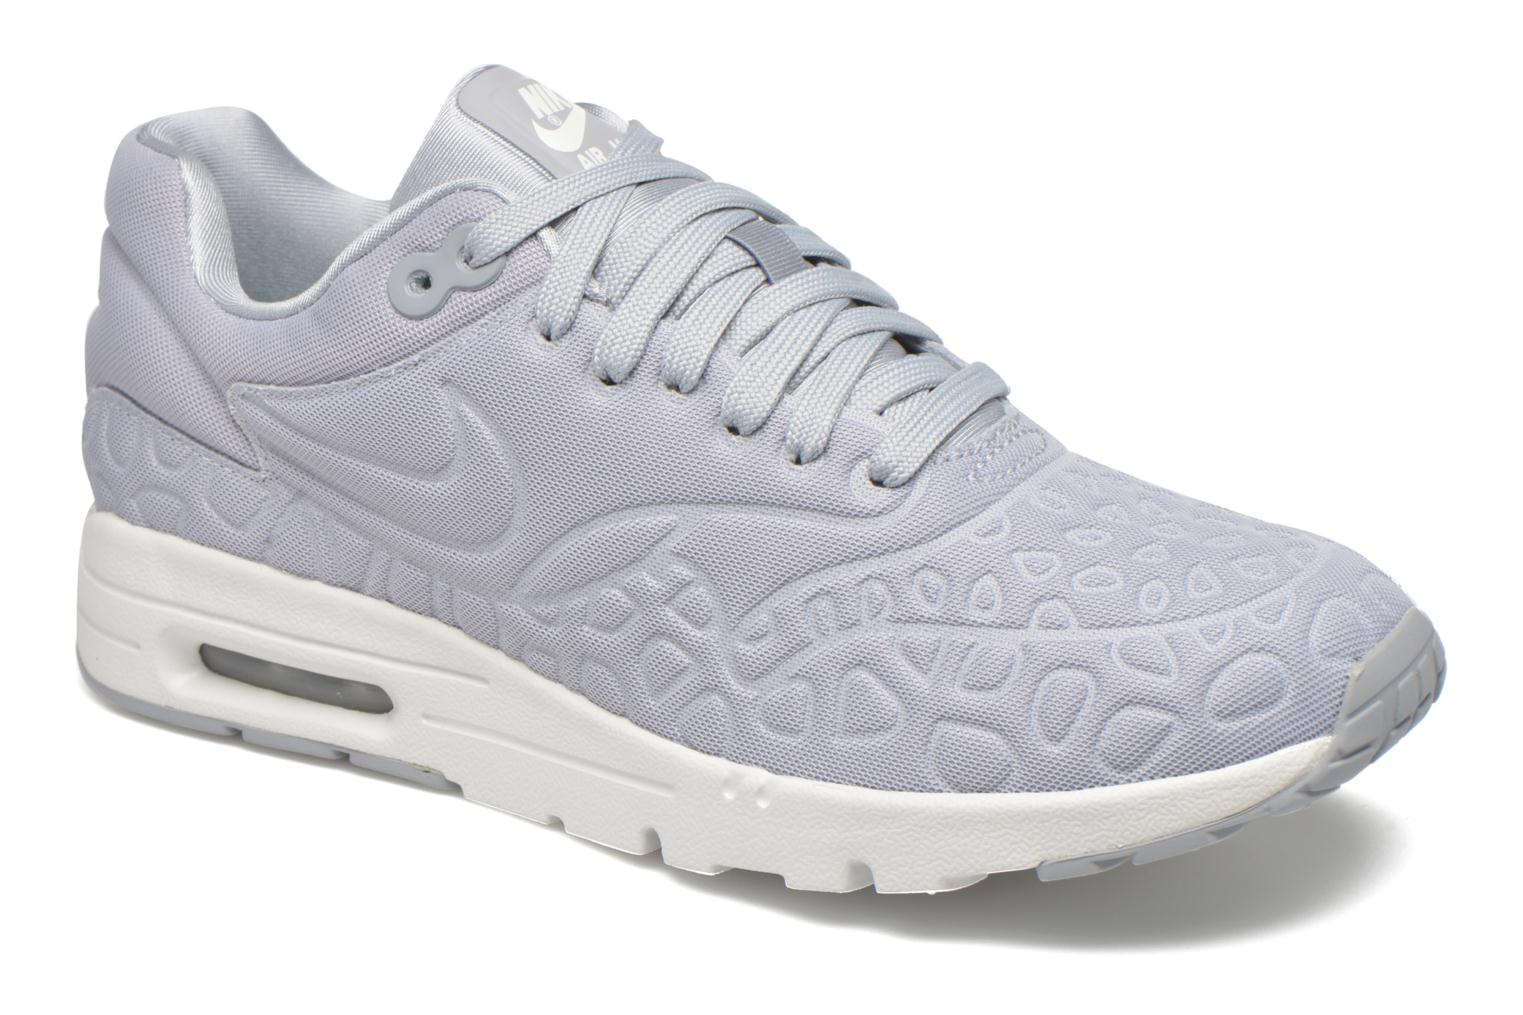 cheap for discount f5d5d d0395 Nike - Damen - Nike W Air Max 1 Ultra Plush - Sneaker - grau